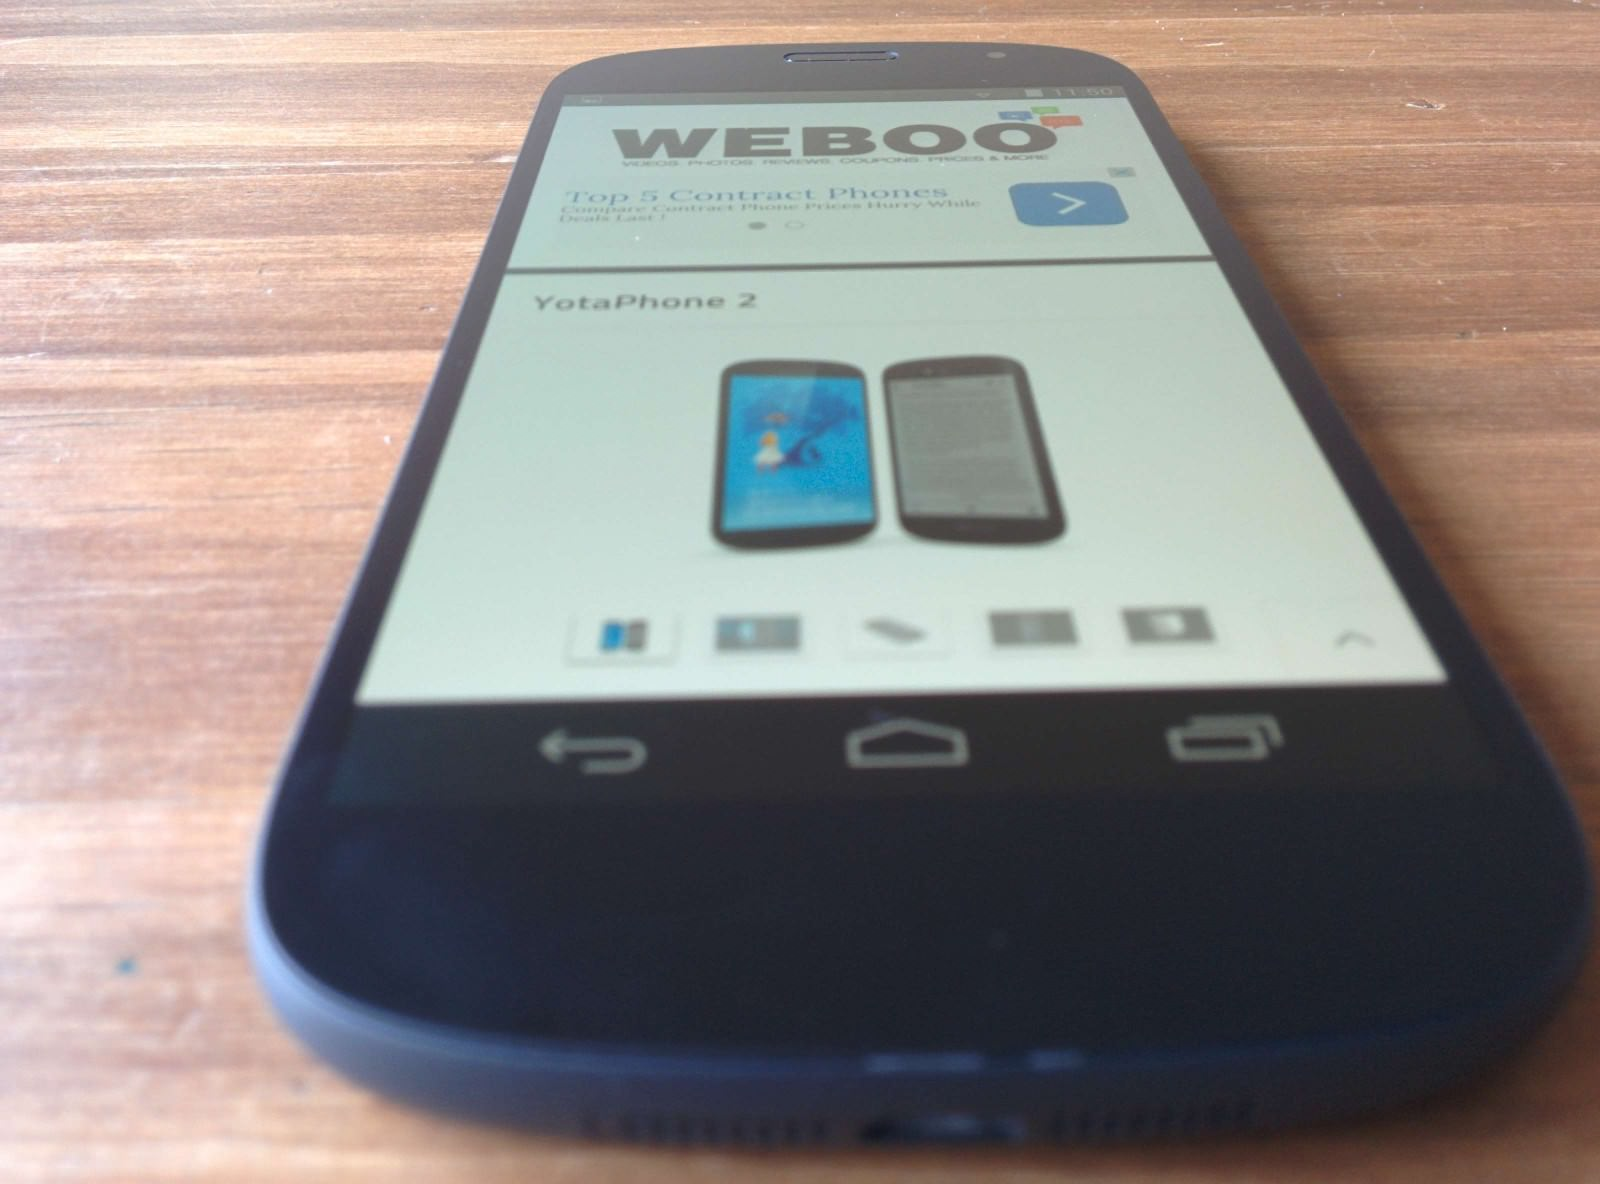 yotaphone-2-review-weboo-co8